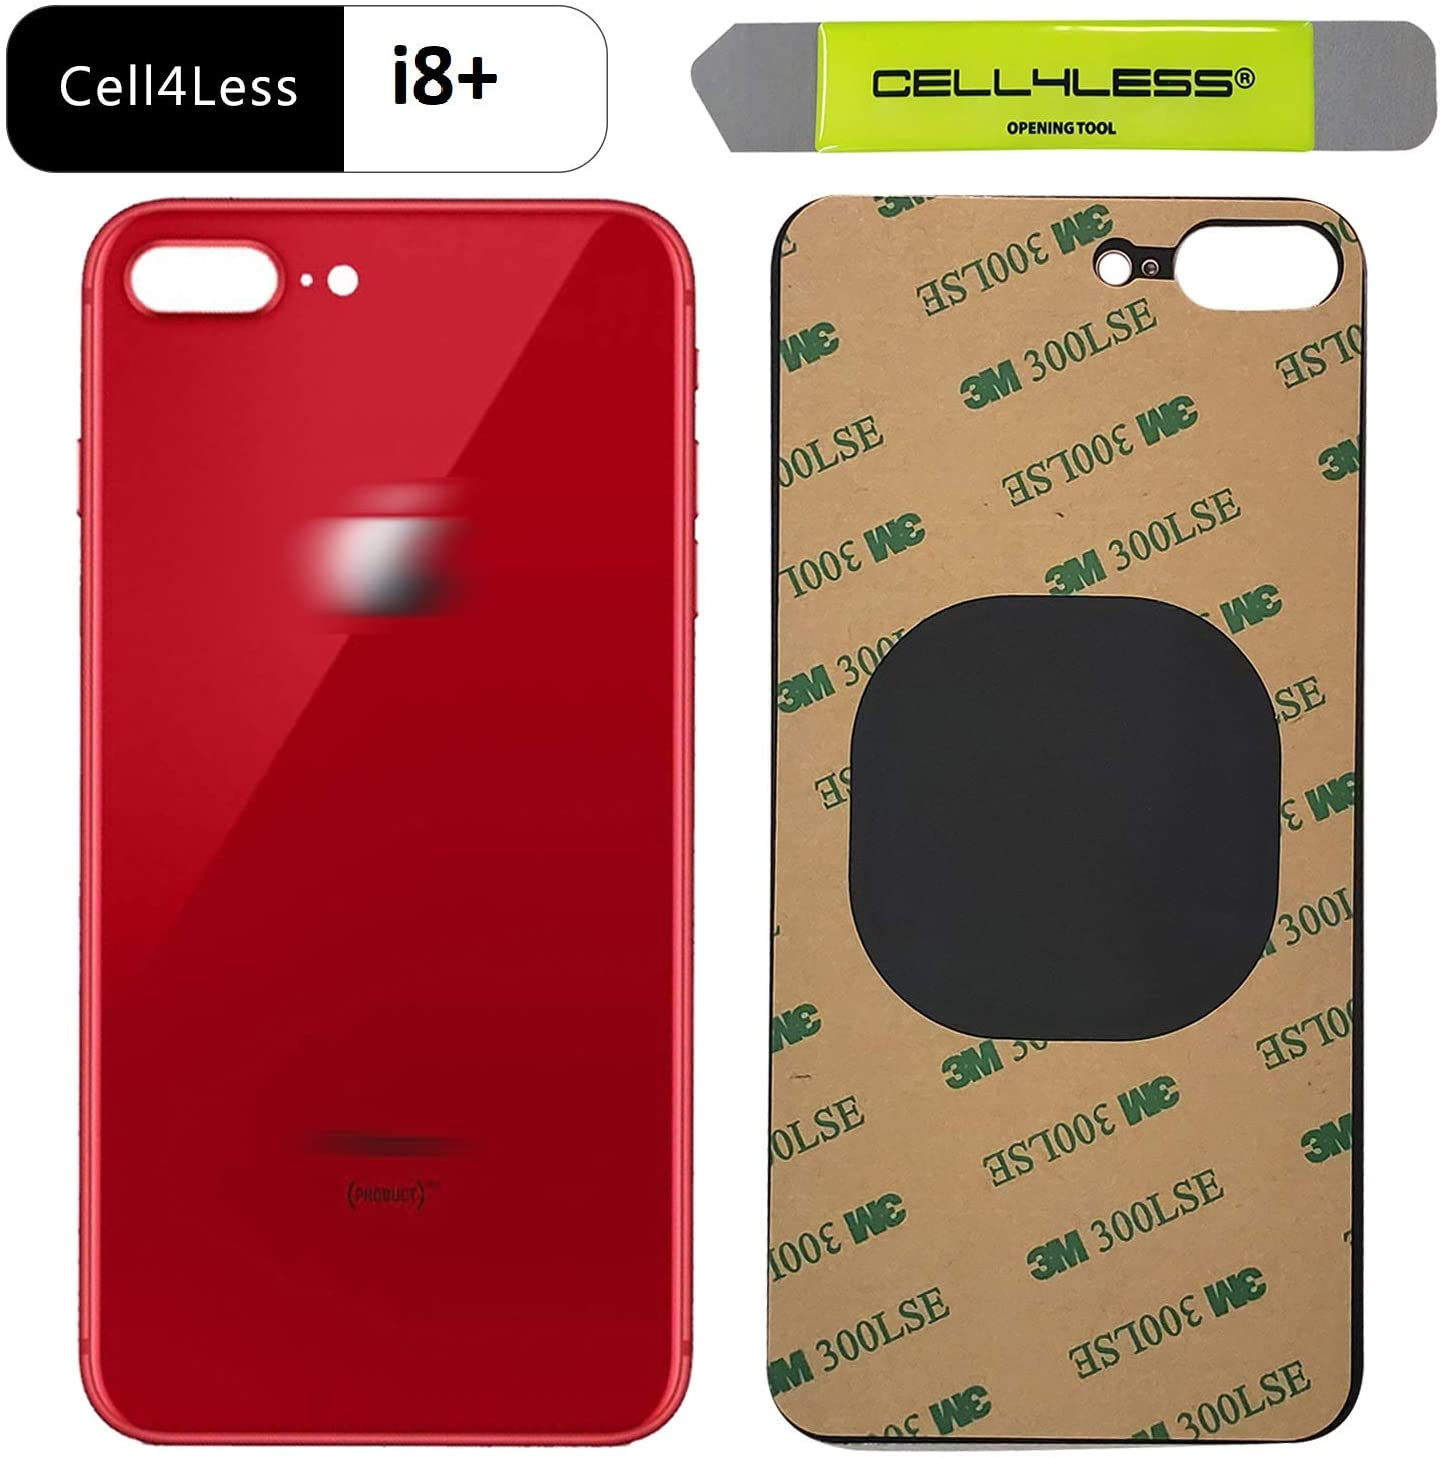 Cell4less Back Glass Compatible with The iPhone 8+ Plus W/Full Body Adhesive, Removal Tool, and Wide Camera Hole for Quicker Installation (Product Red)